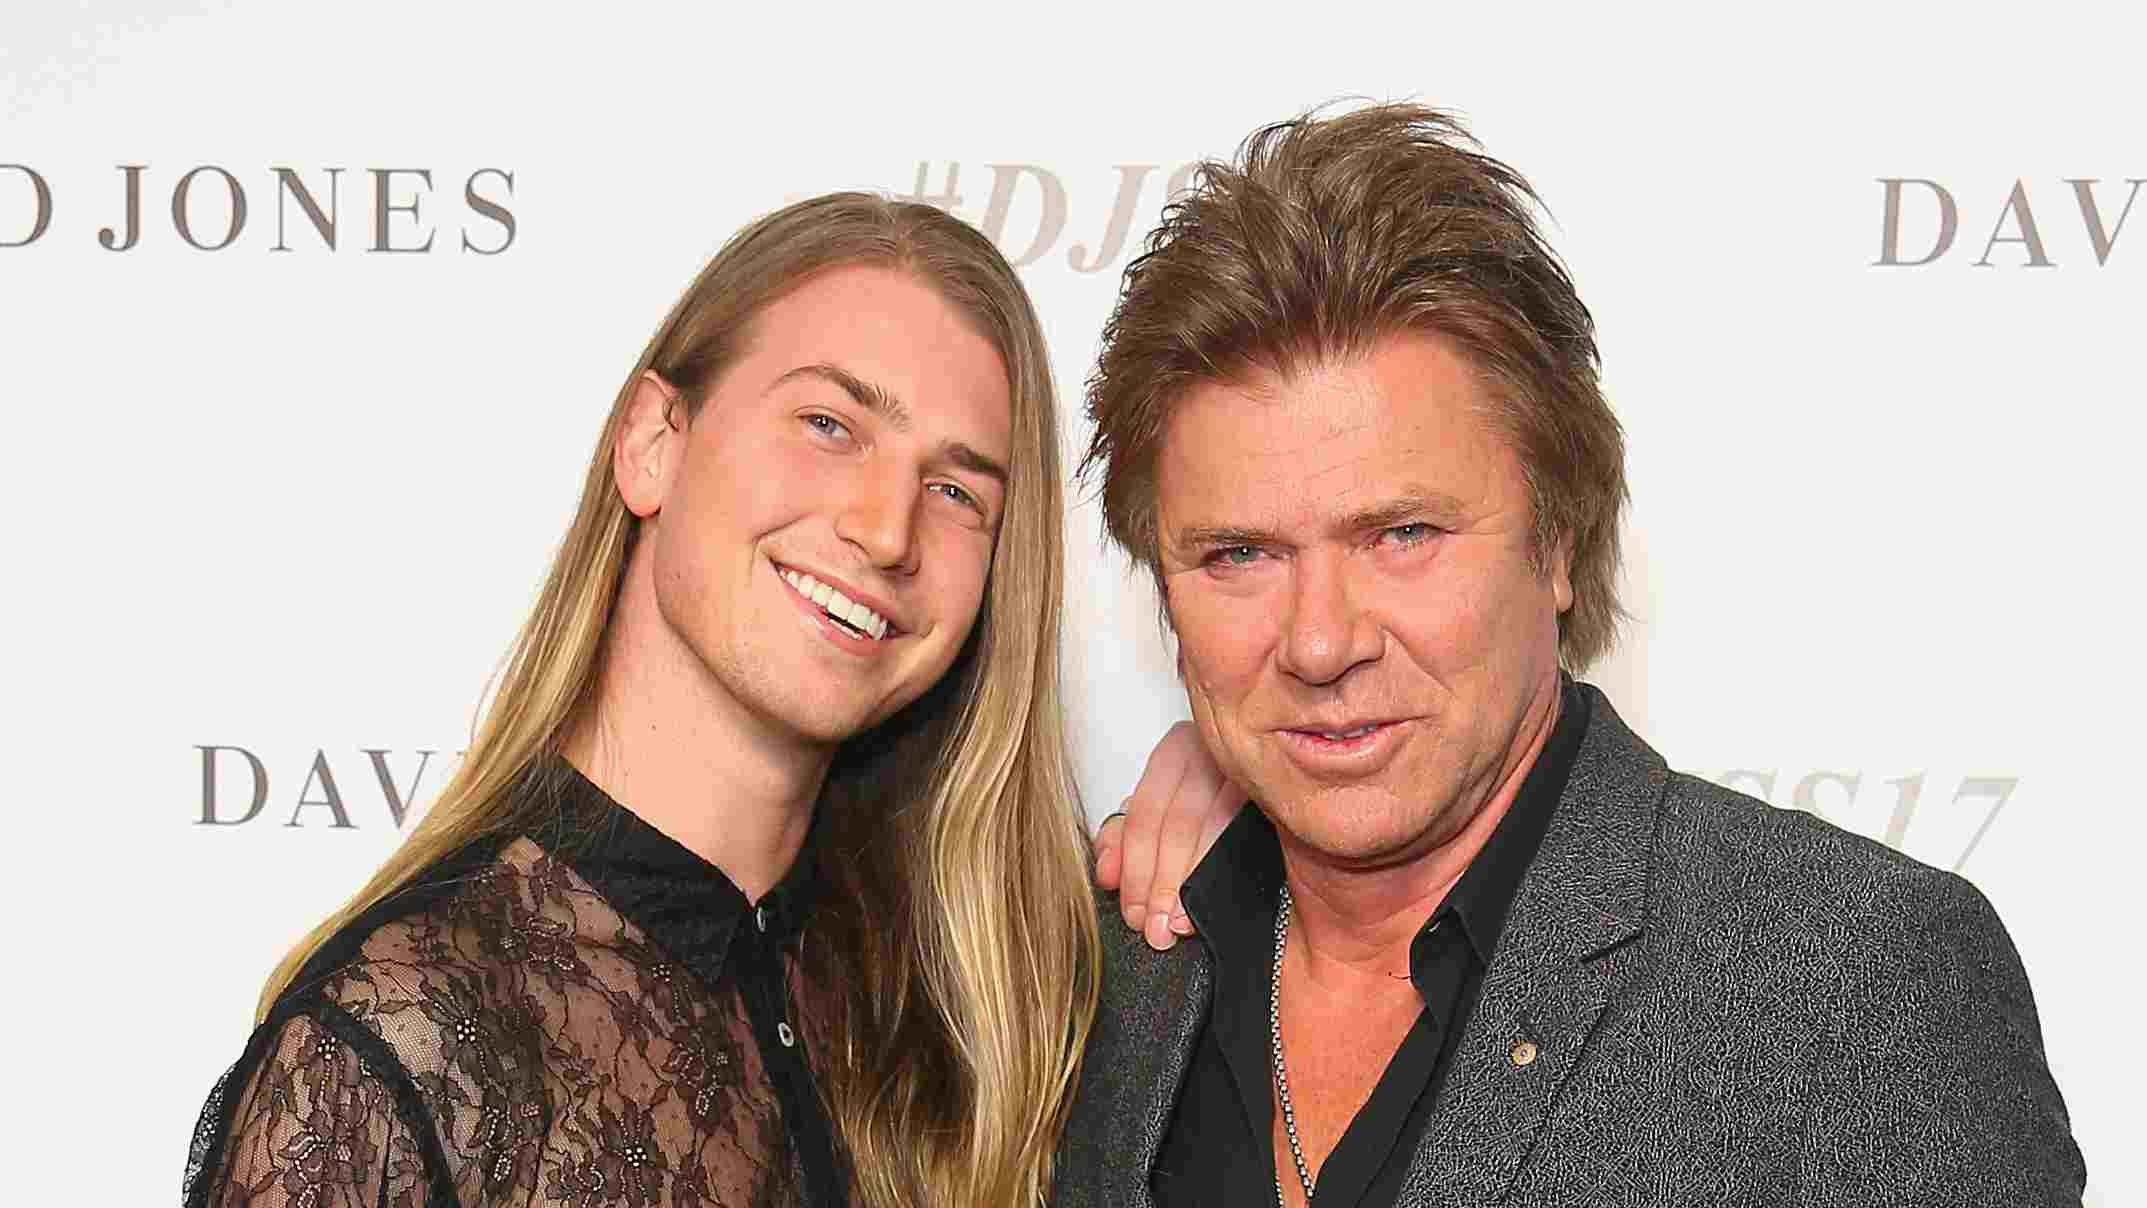 Wedding bells? Richard Wilkins and Virginia Burmeister update